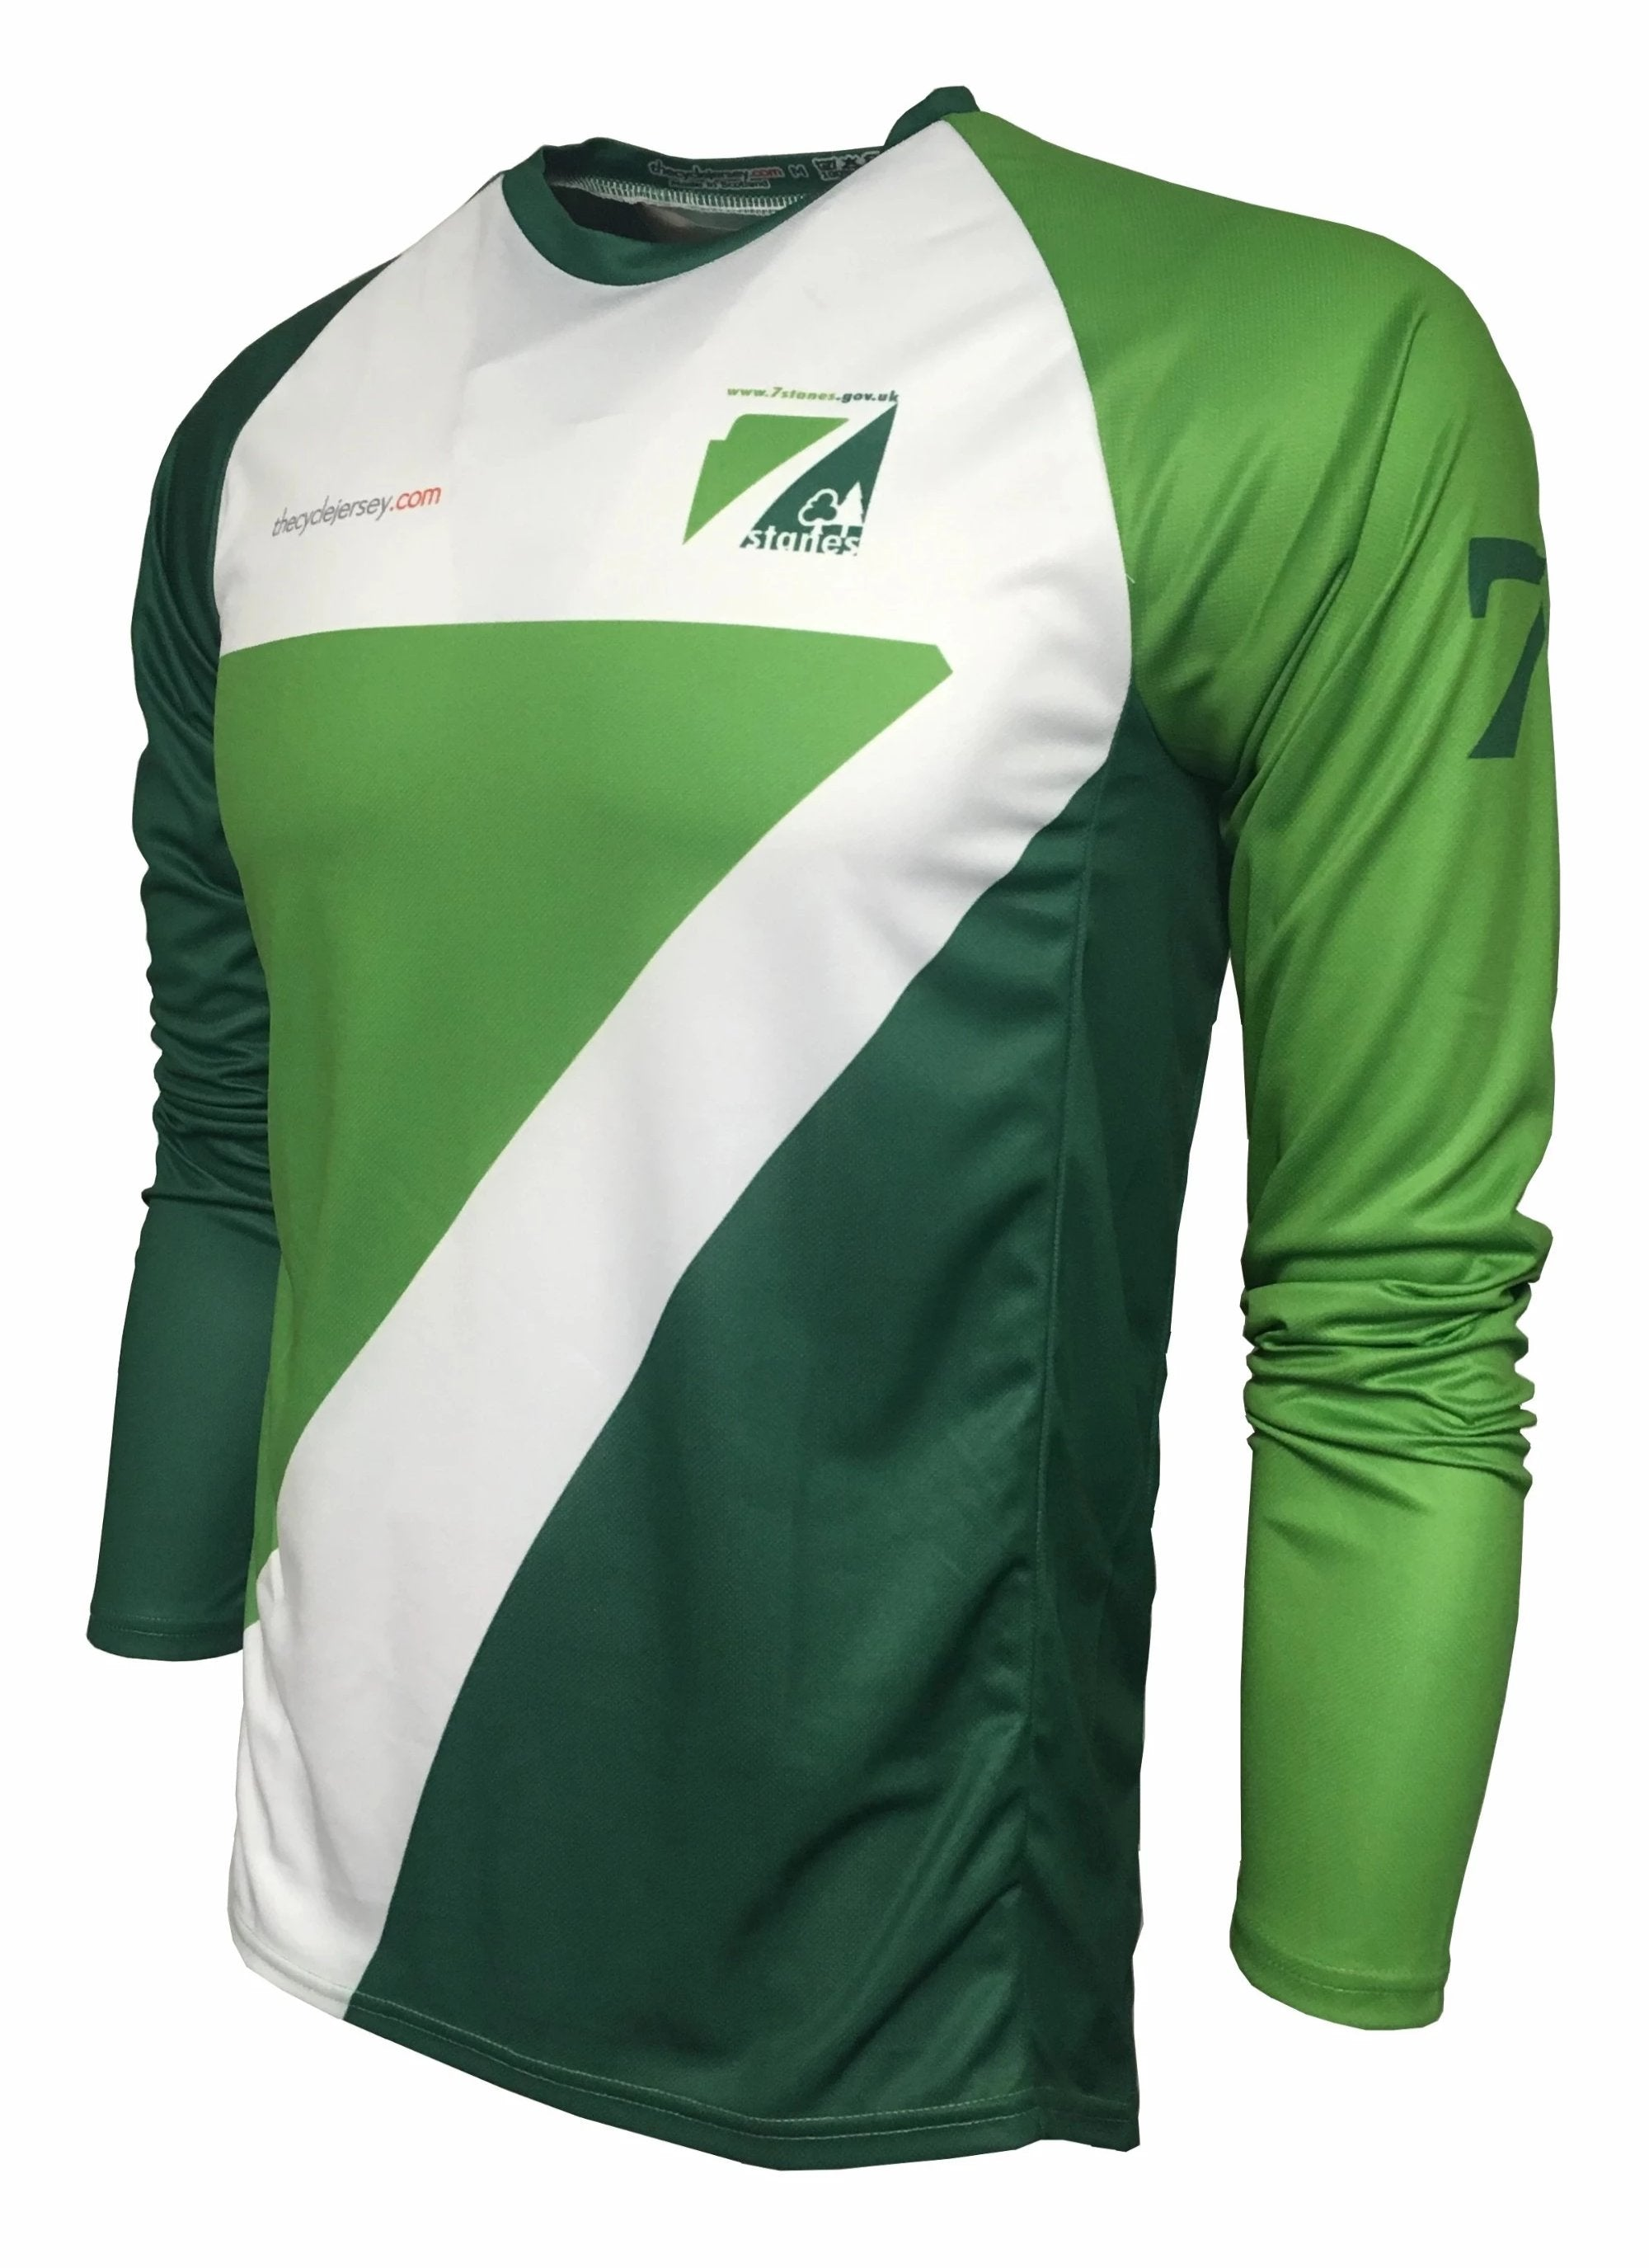 7Stanes Classic Enduro Cycling Jersey Front